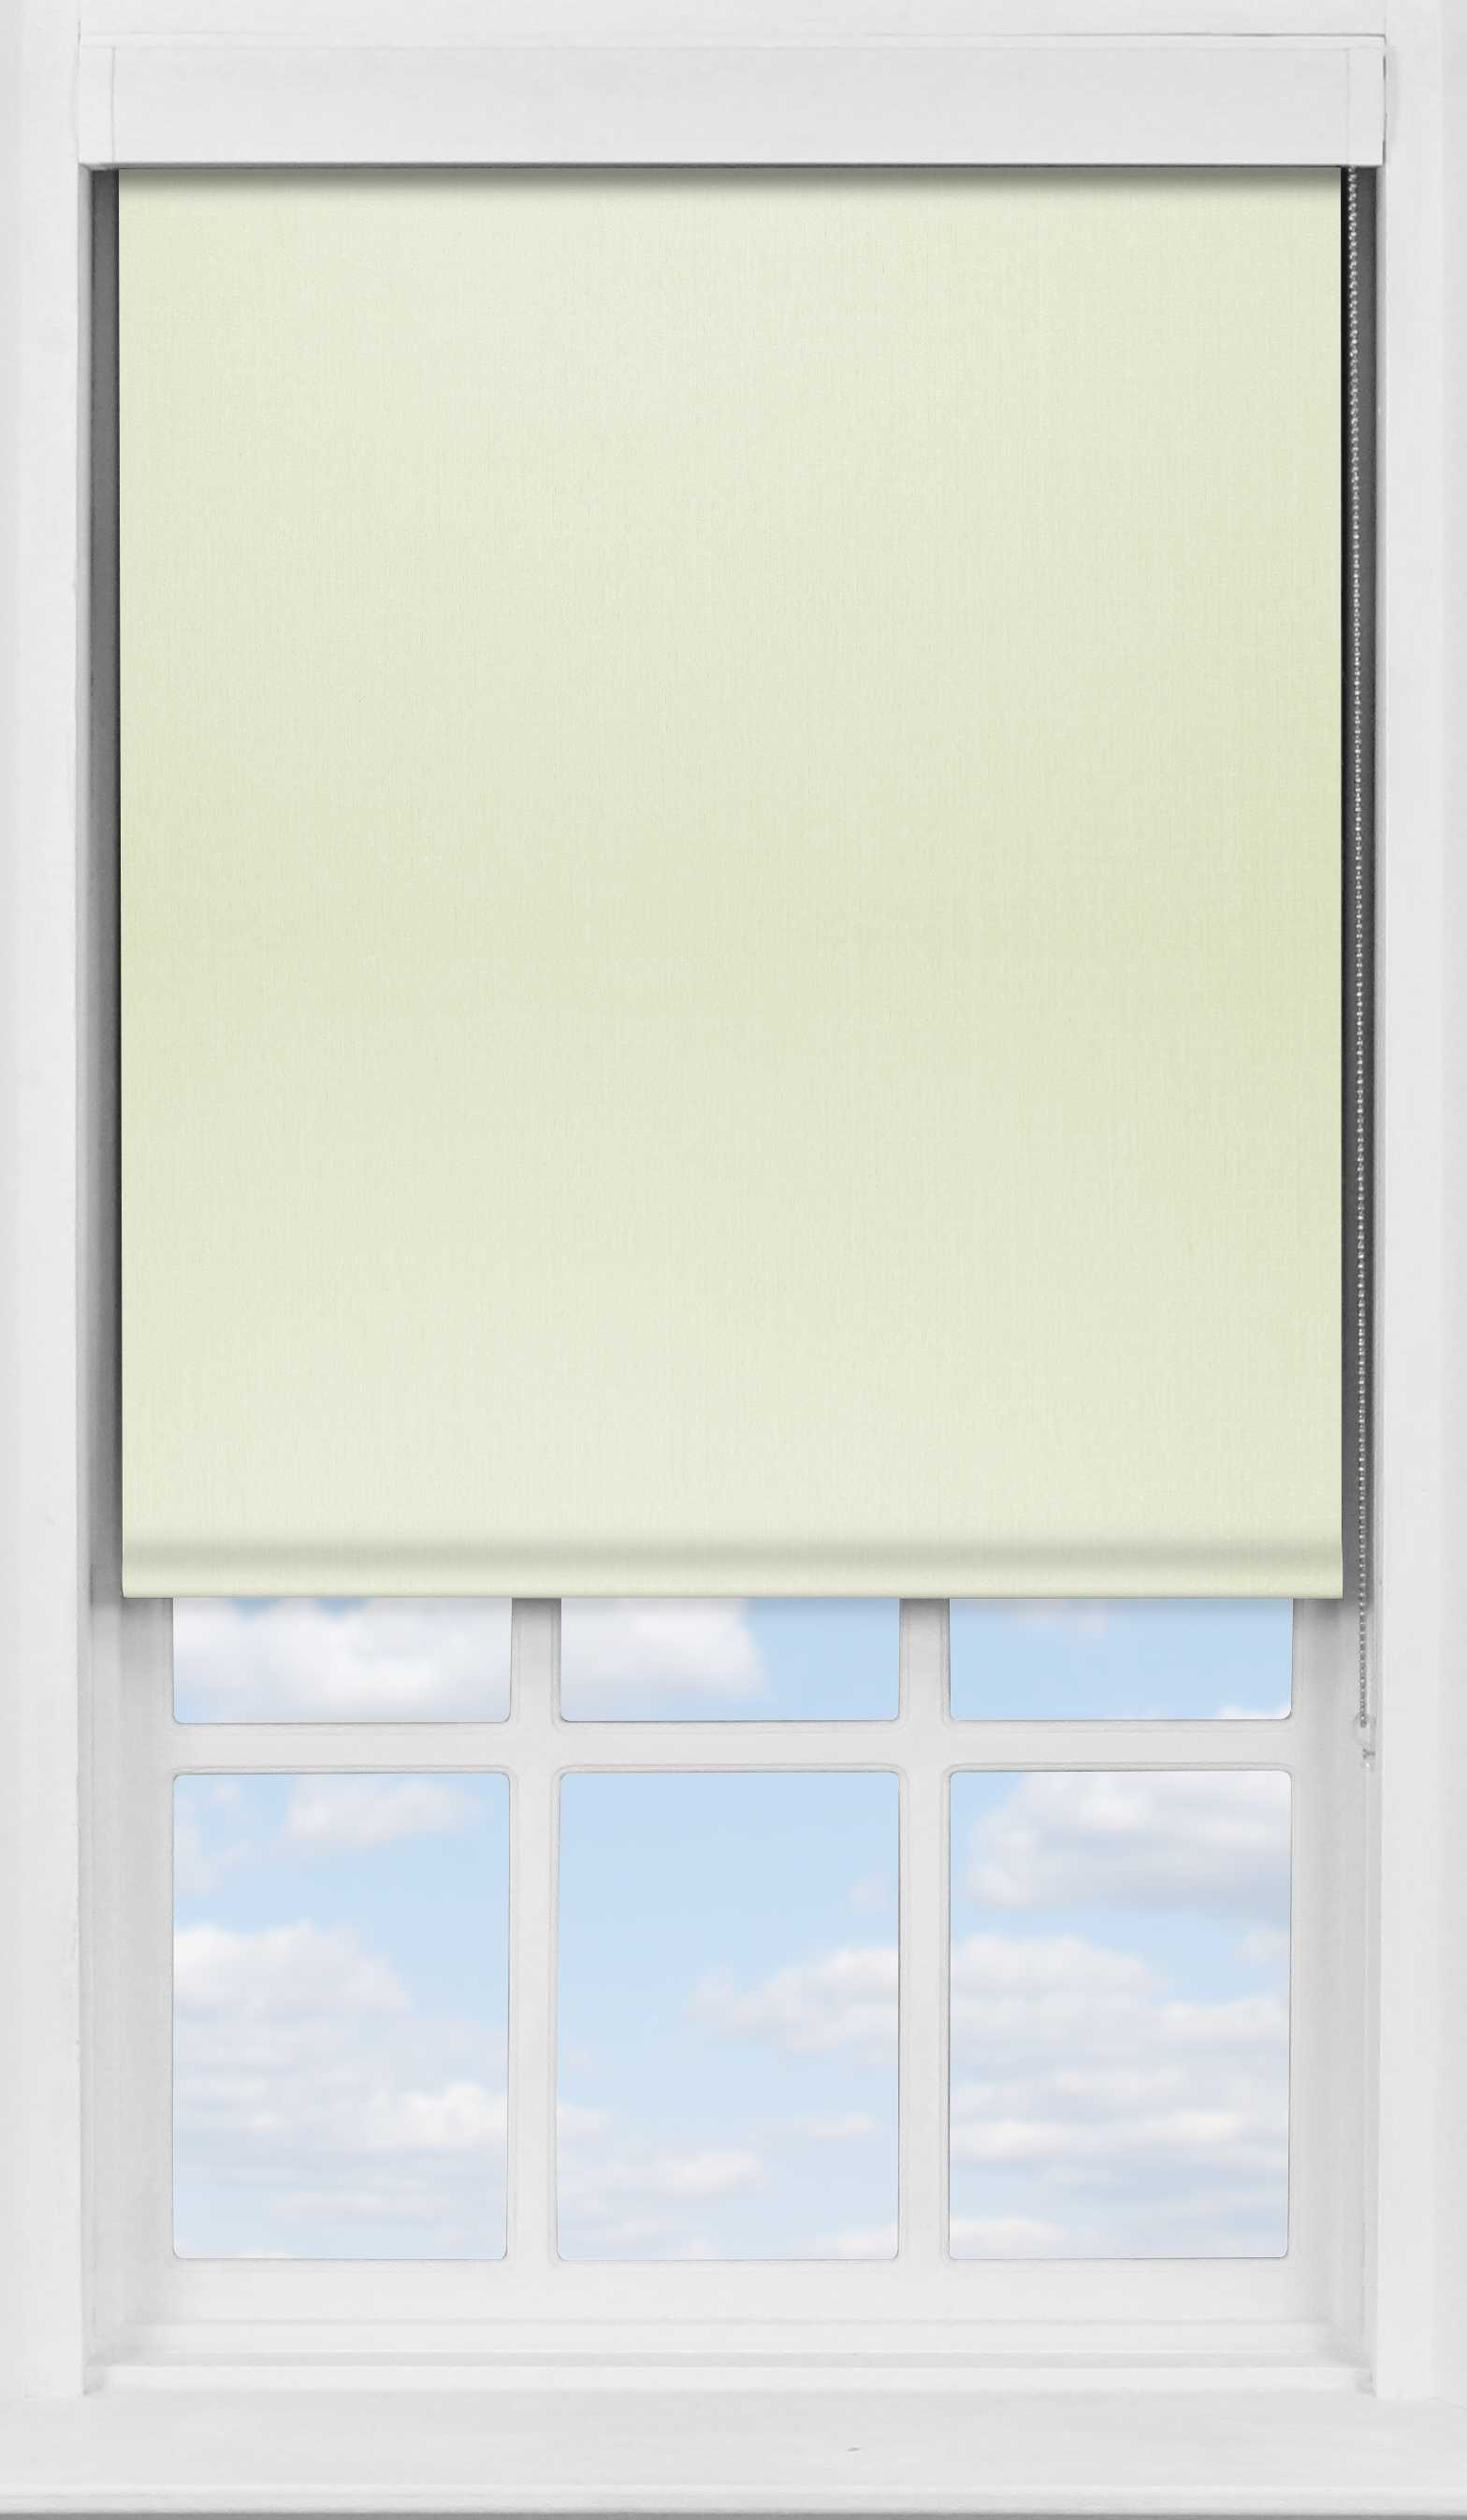 Premium Roller Blind in Desert Cream Translucent